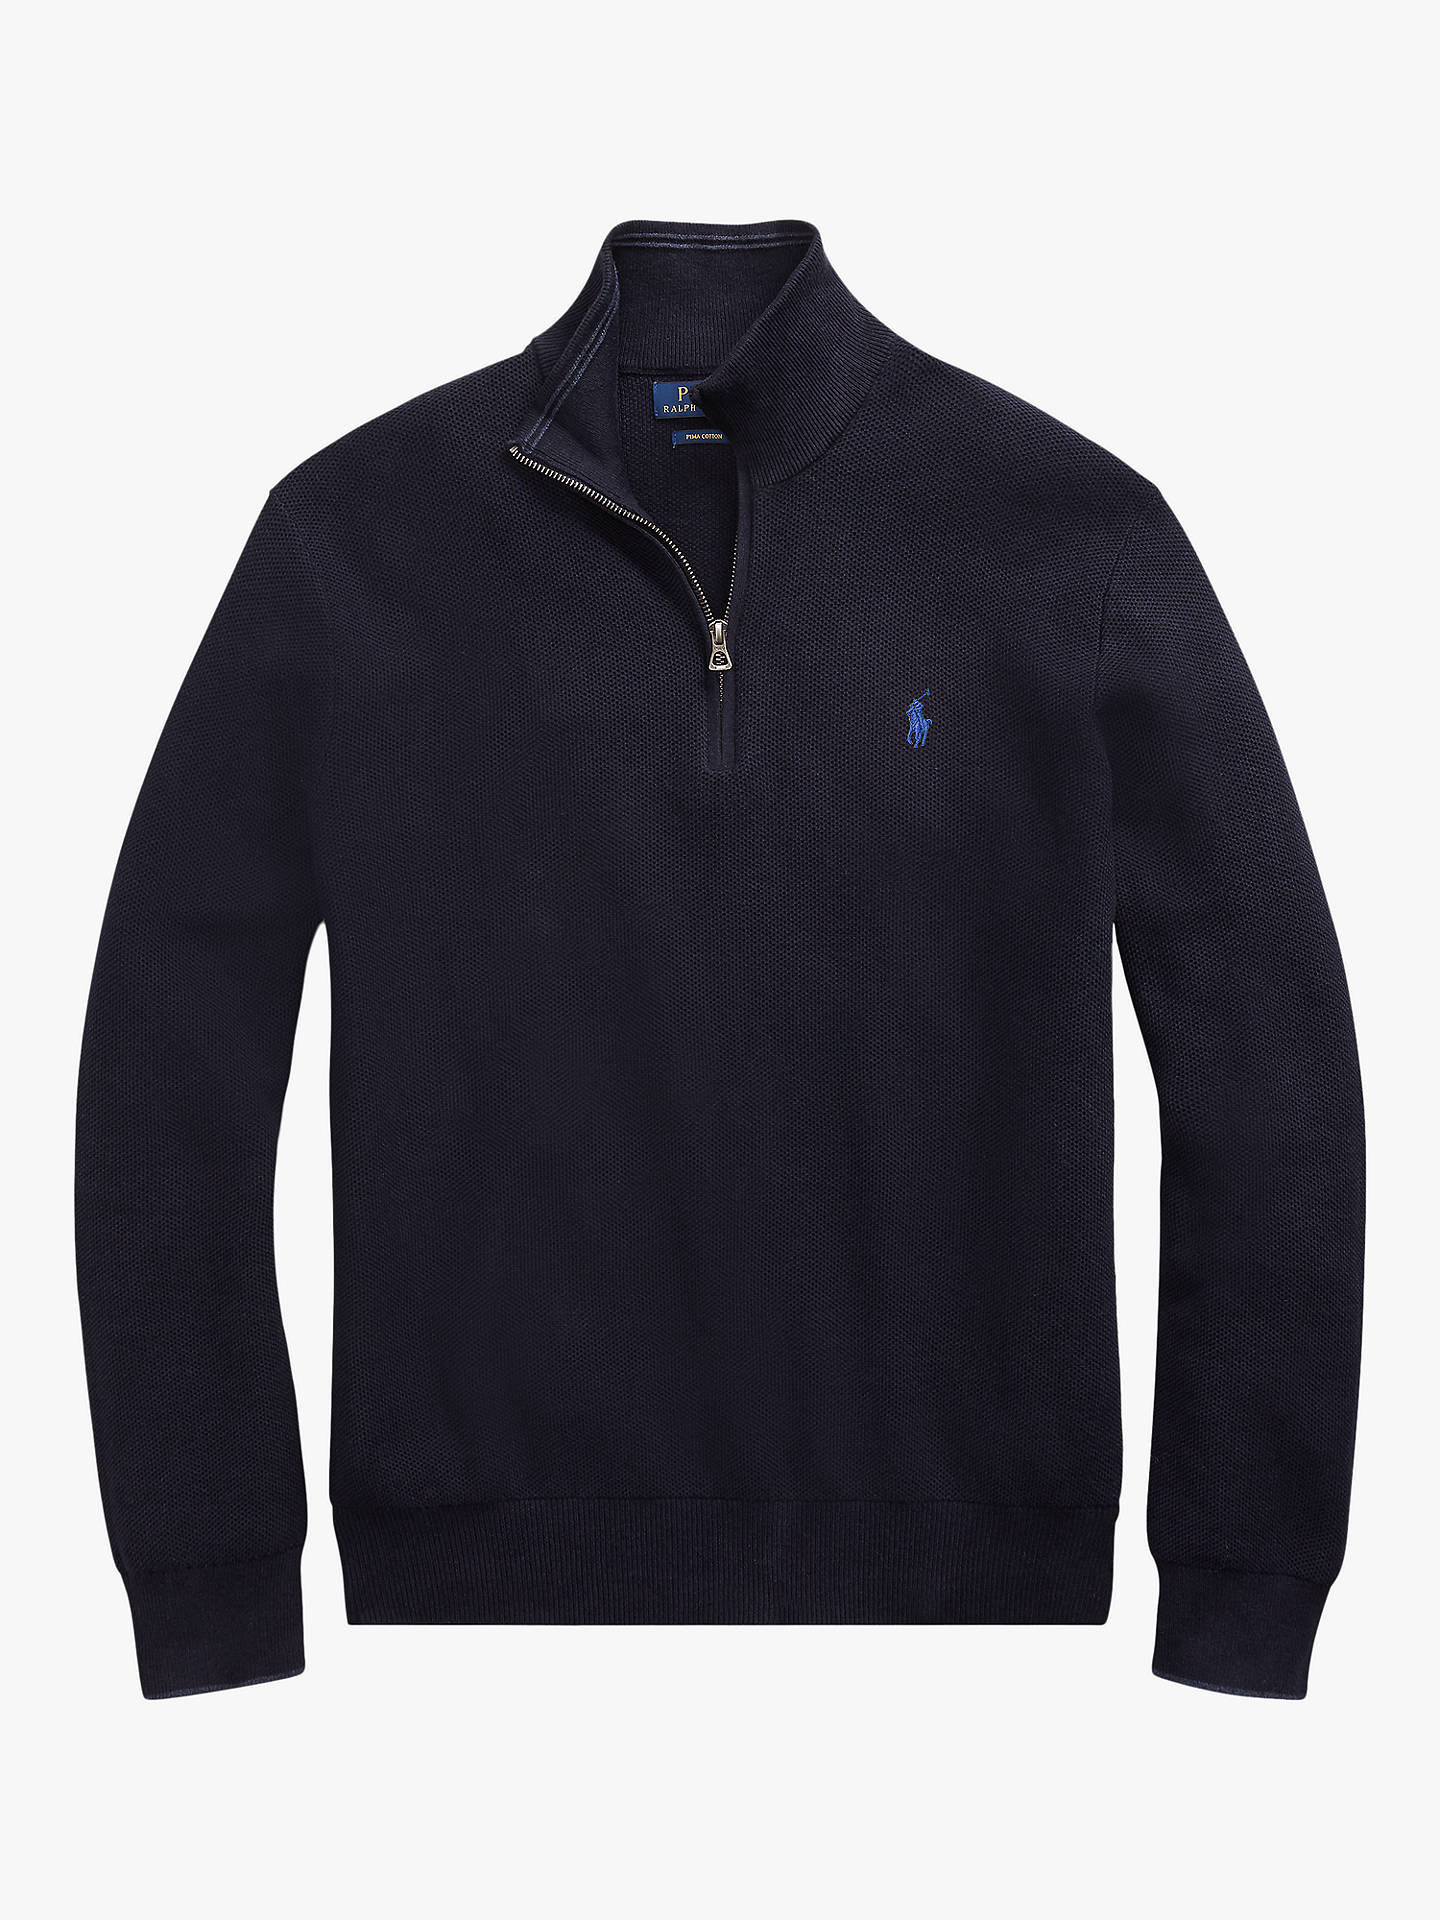 Buy Polo Ralph Lauren Half Zip Textured Jumper, Navy Heather, S Online at johnlewis.com